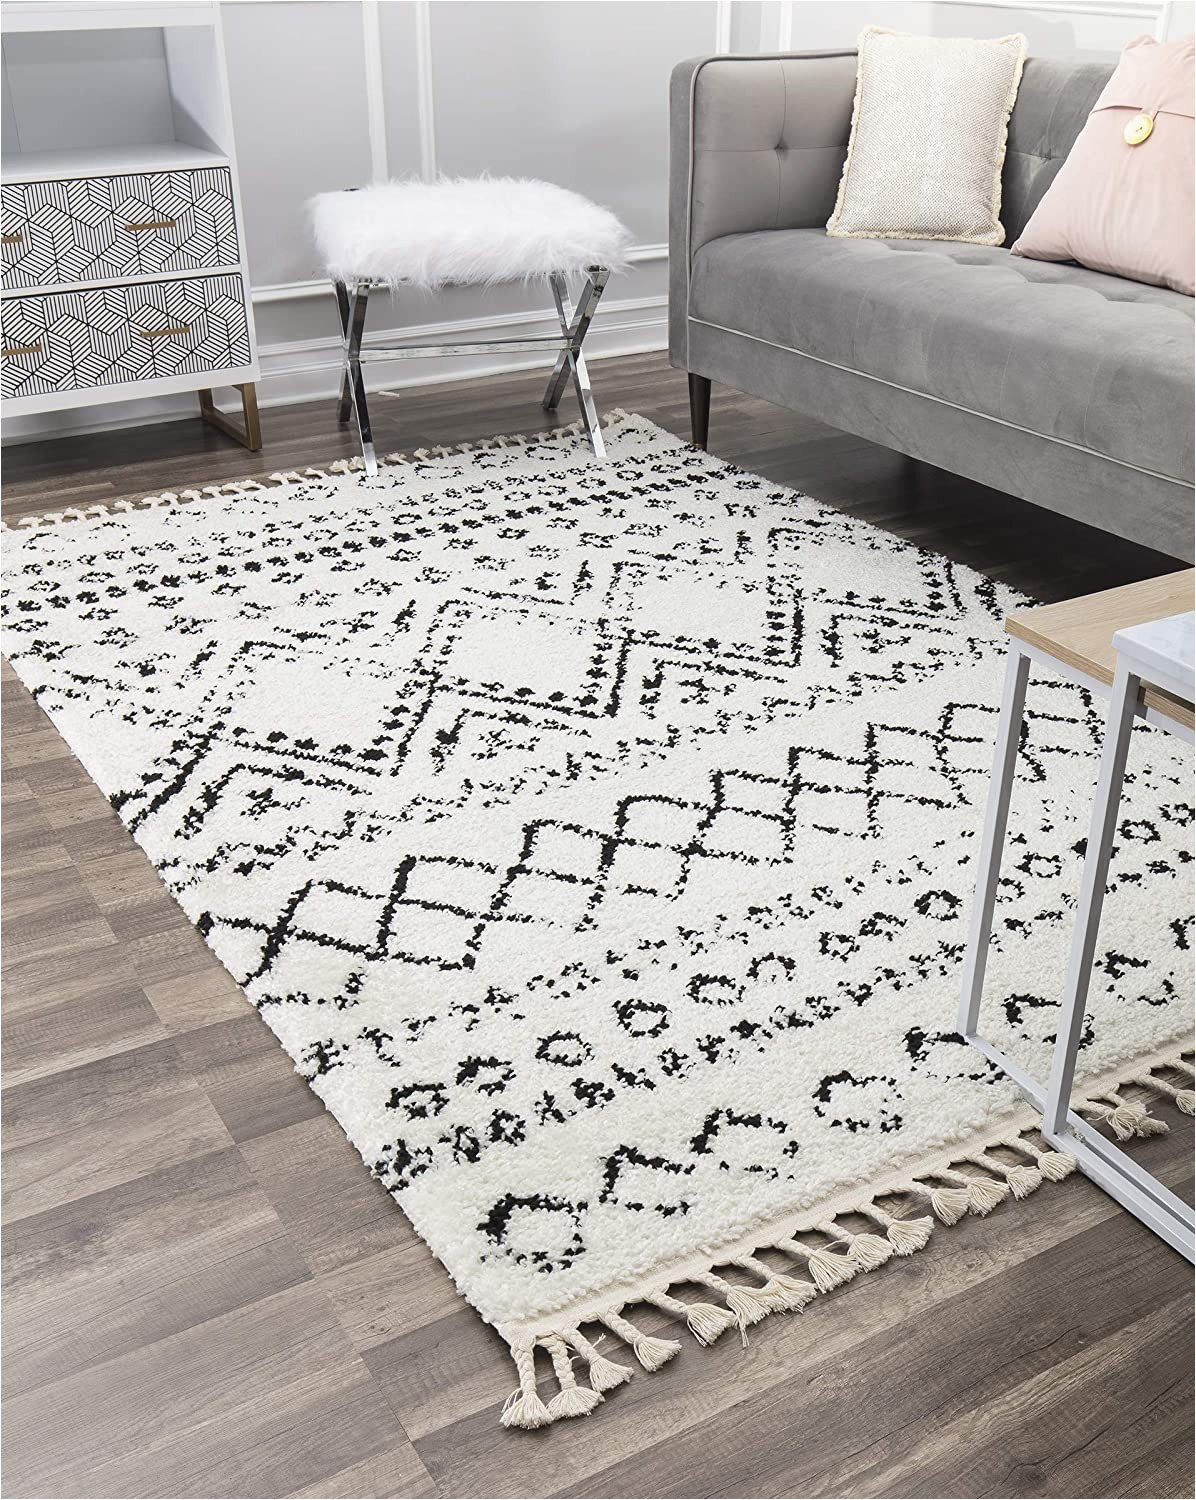 Buy now Pay Later area Rugs Amazon Cosmoliving by Cosmopolitan Wisp area Rug 8 0